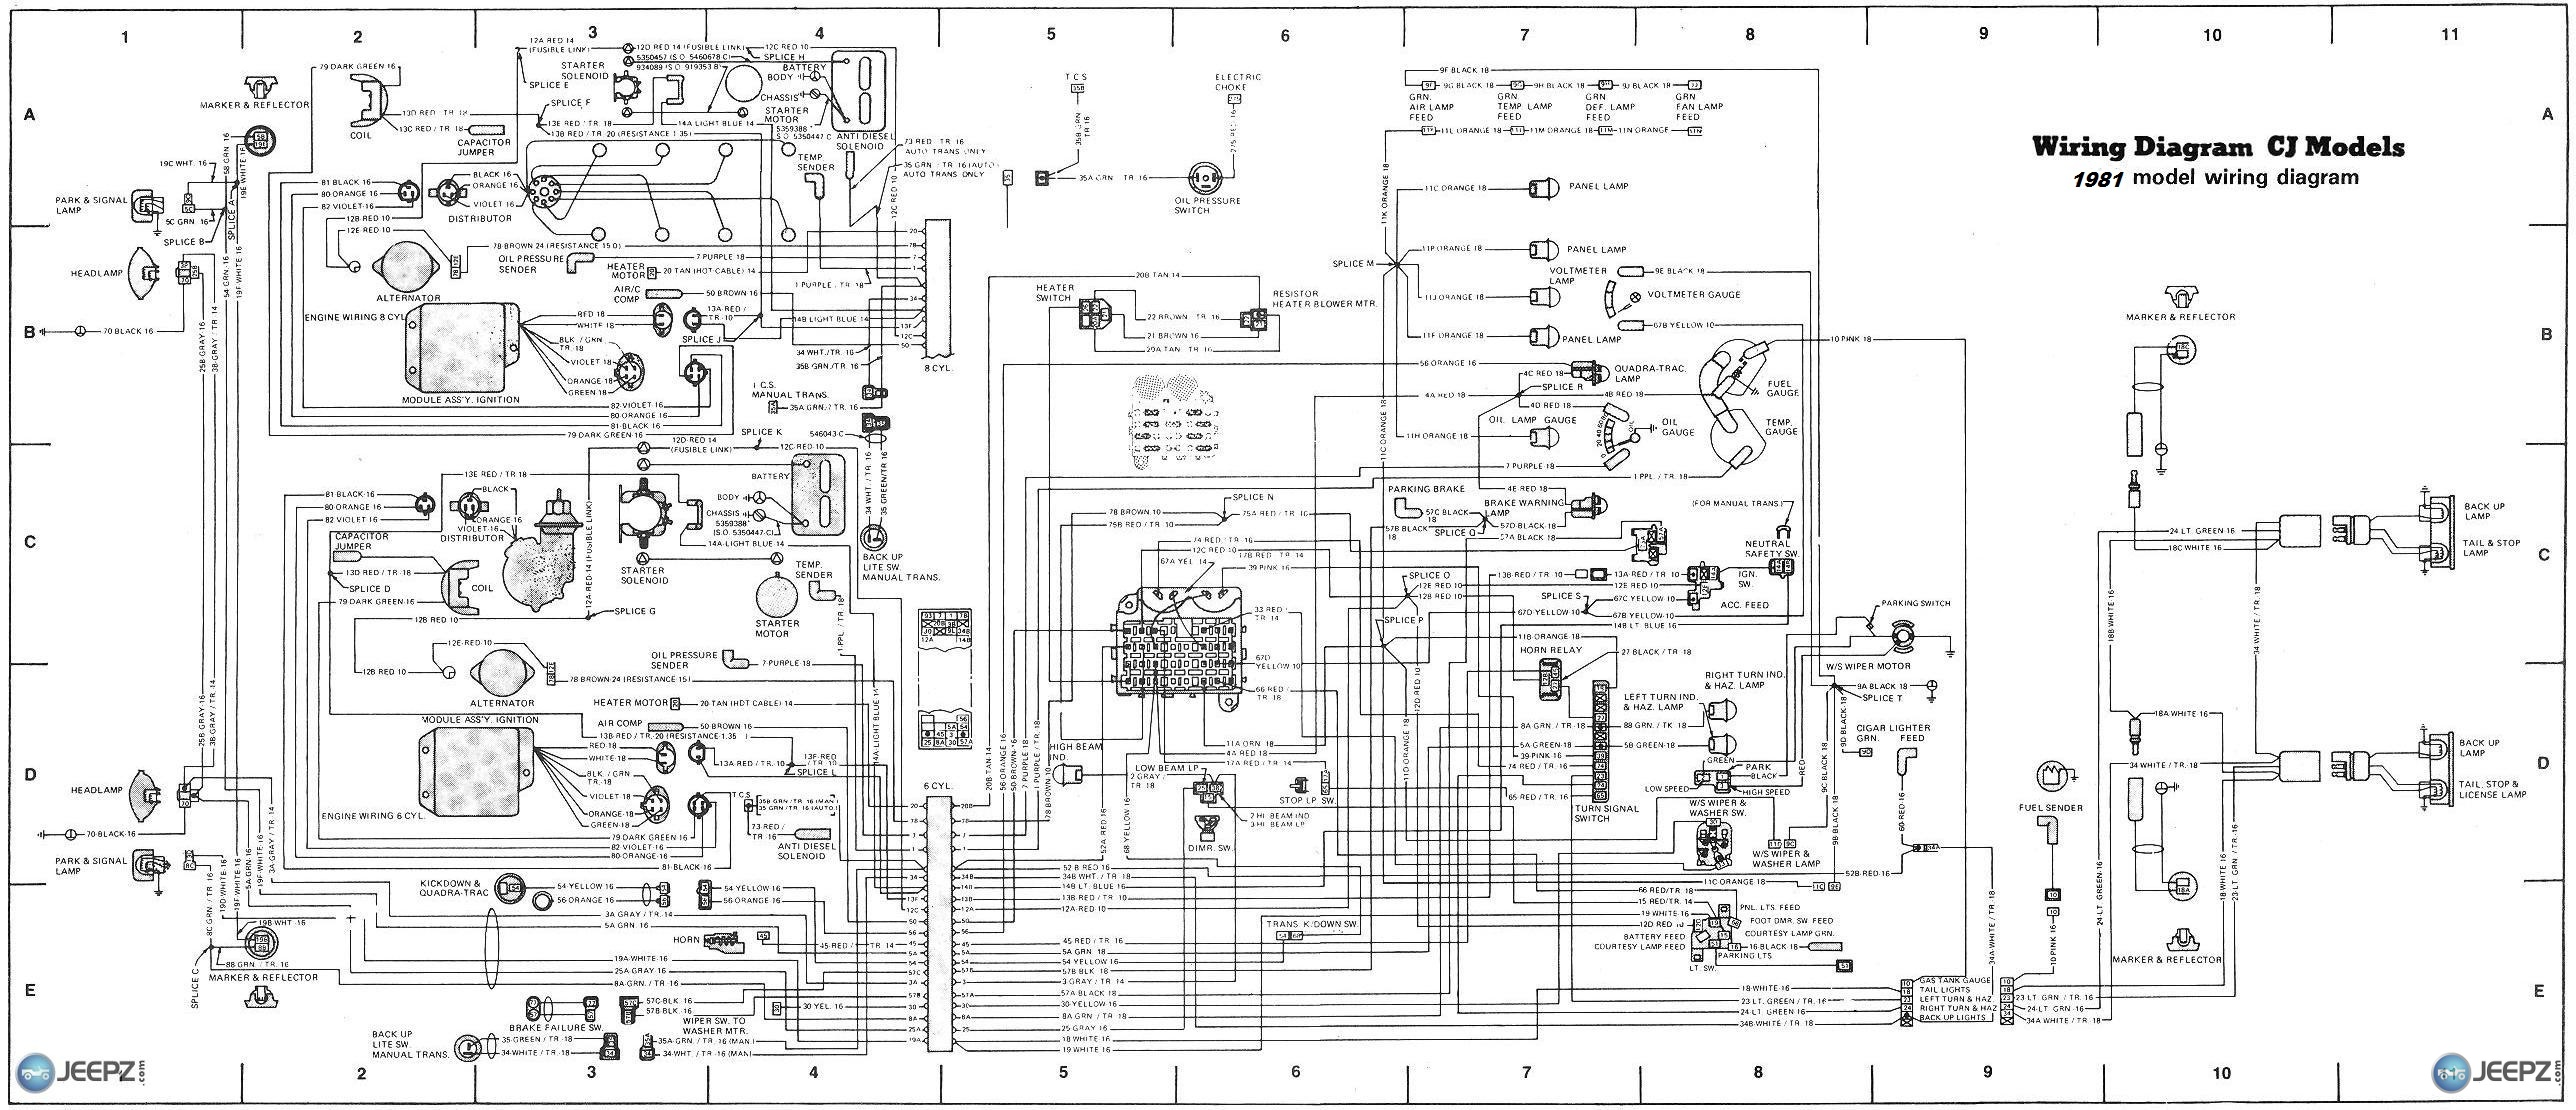 7993d1301845049 cj 7 wire diagram cj wiring diagram 1981 1983 jeep cj7 wiring diagram 1983 wiring diagrams instruction 2007 jeep grand cherokee tail light wiring diagram at mifinder.co